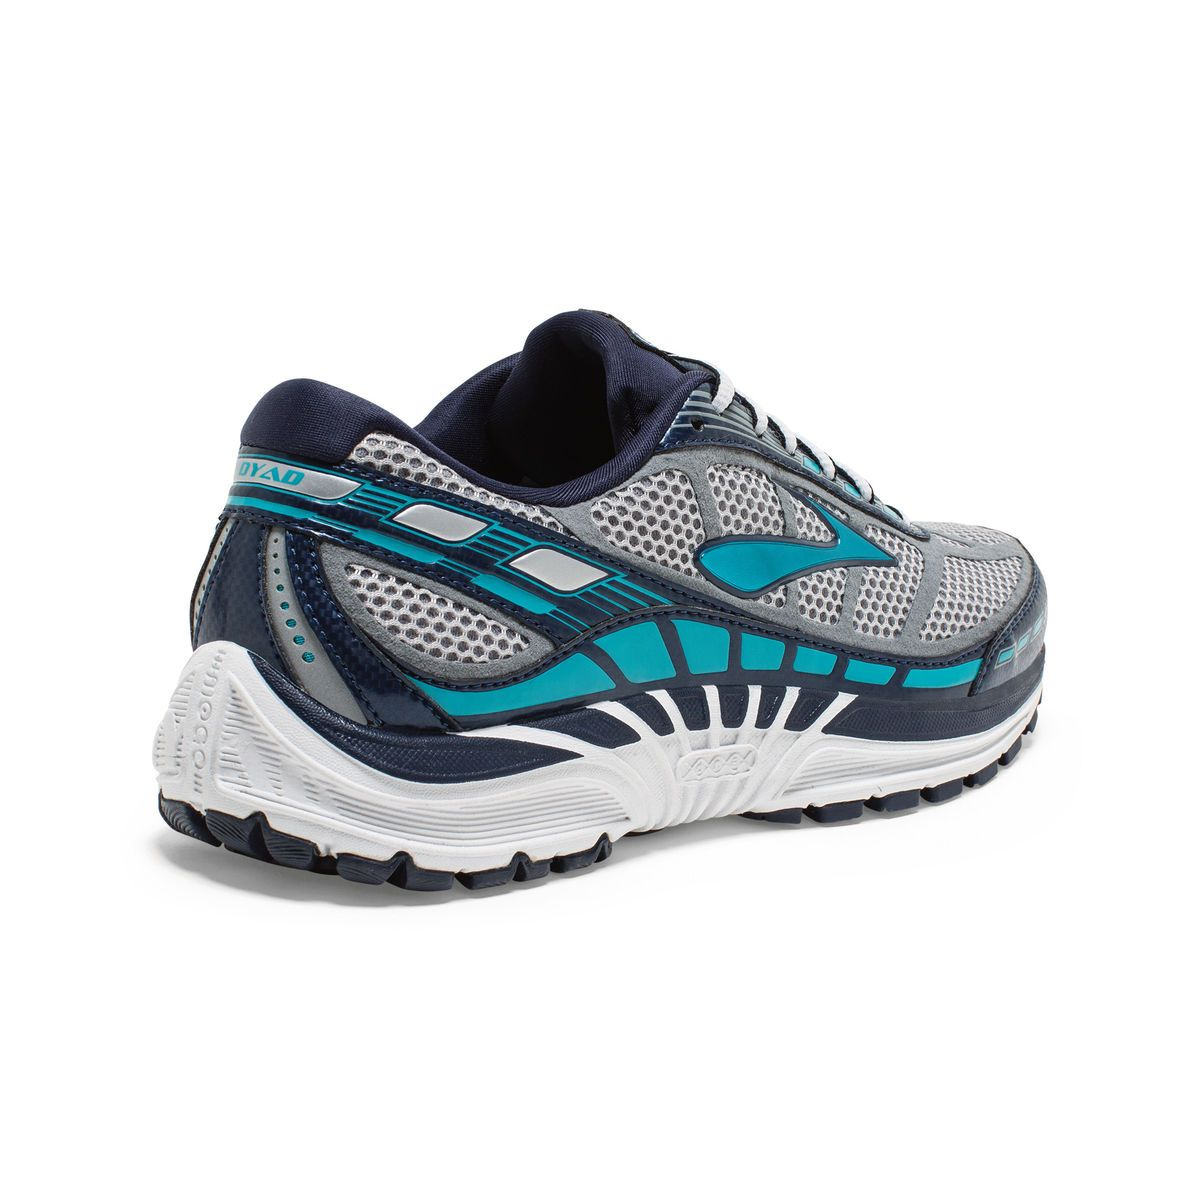 99c6aeeef83 Brooks Dyad 8 Running Shoes - also recommended